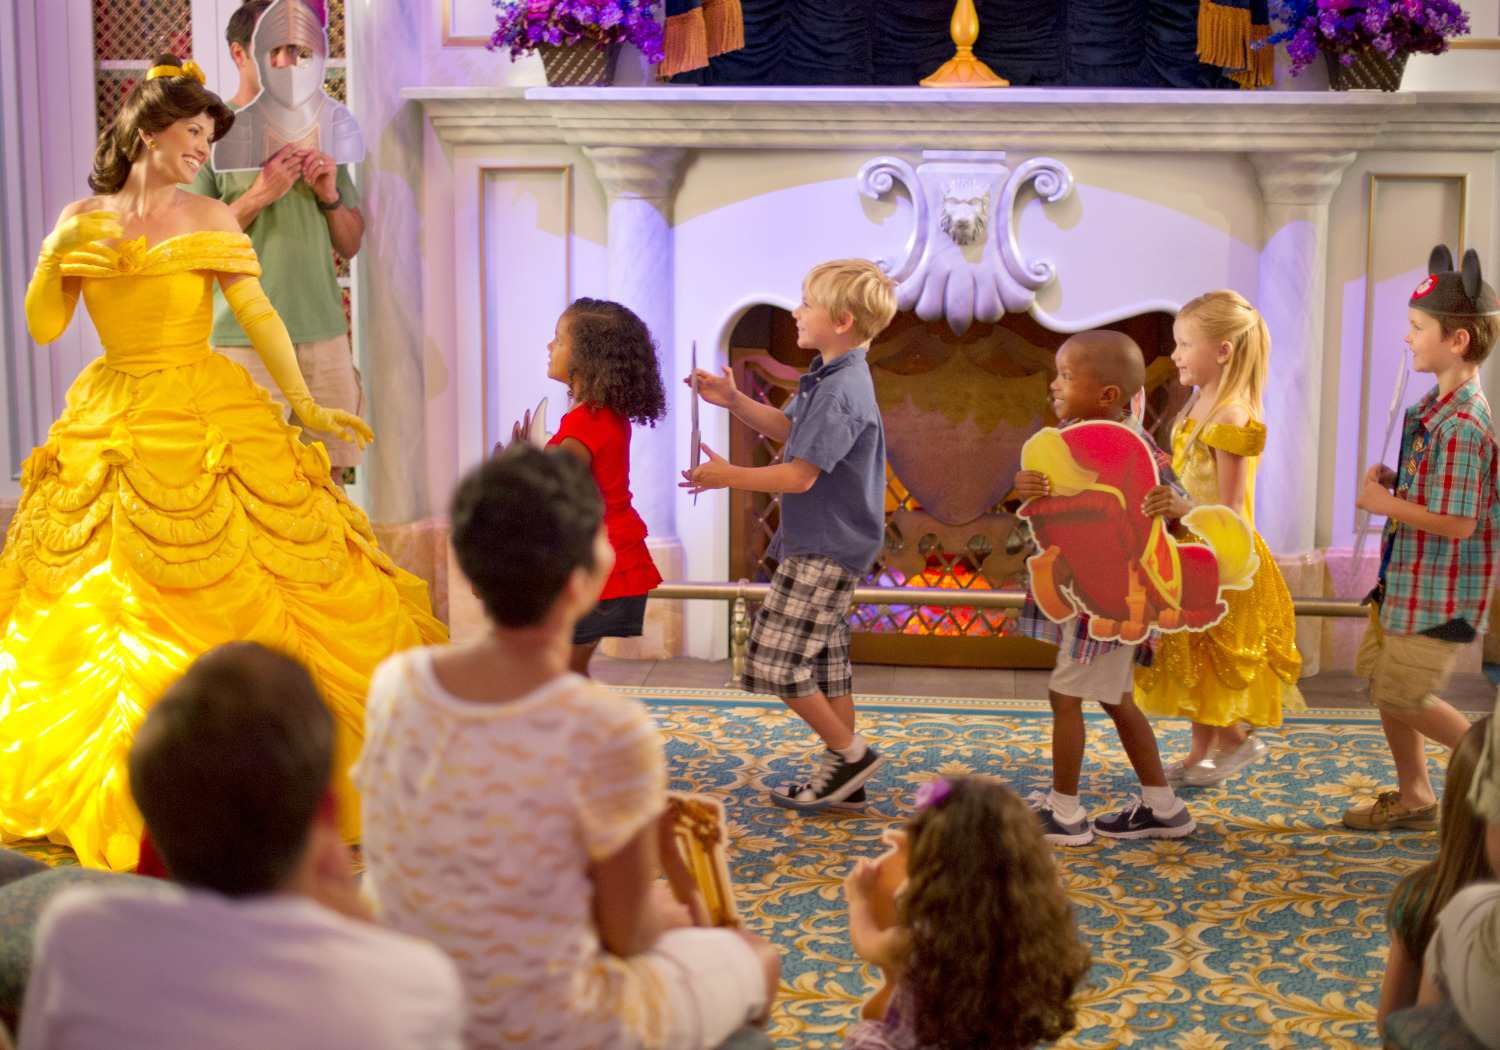 8 Beauty And The Beast Experiences At Disney World